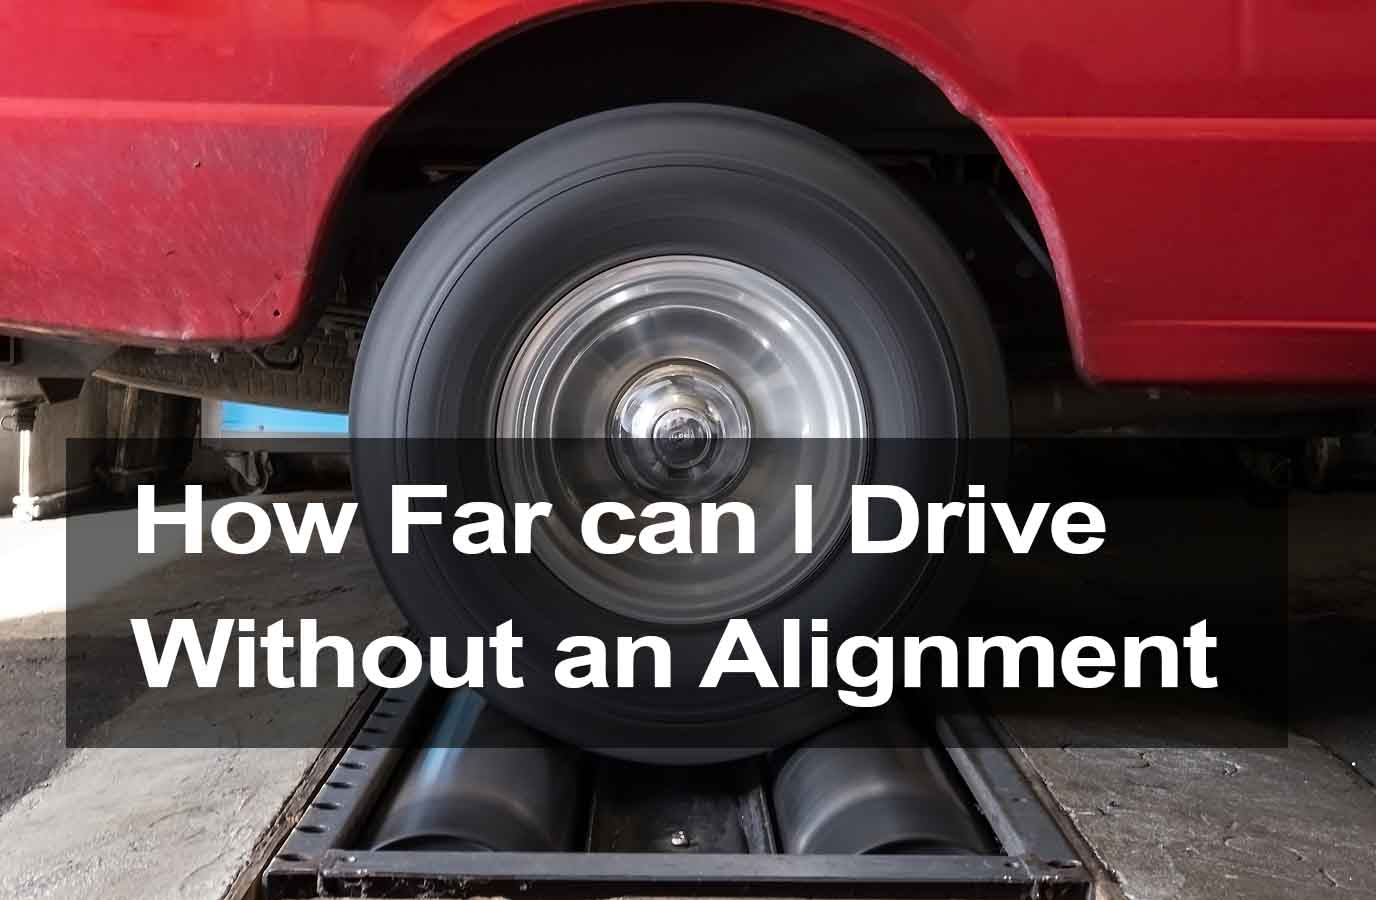 How far can I Drive Without an Alignment?